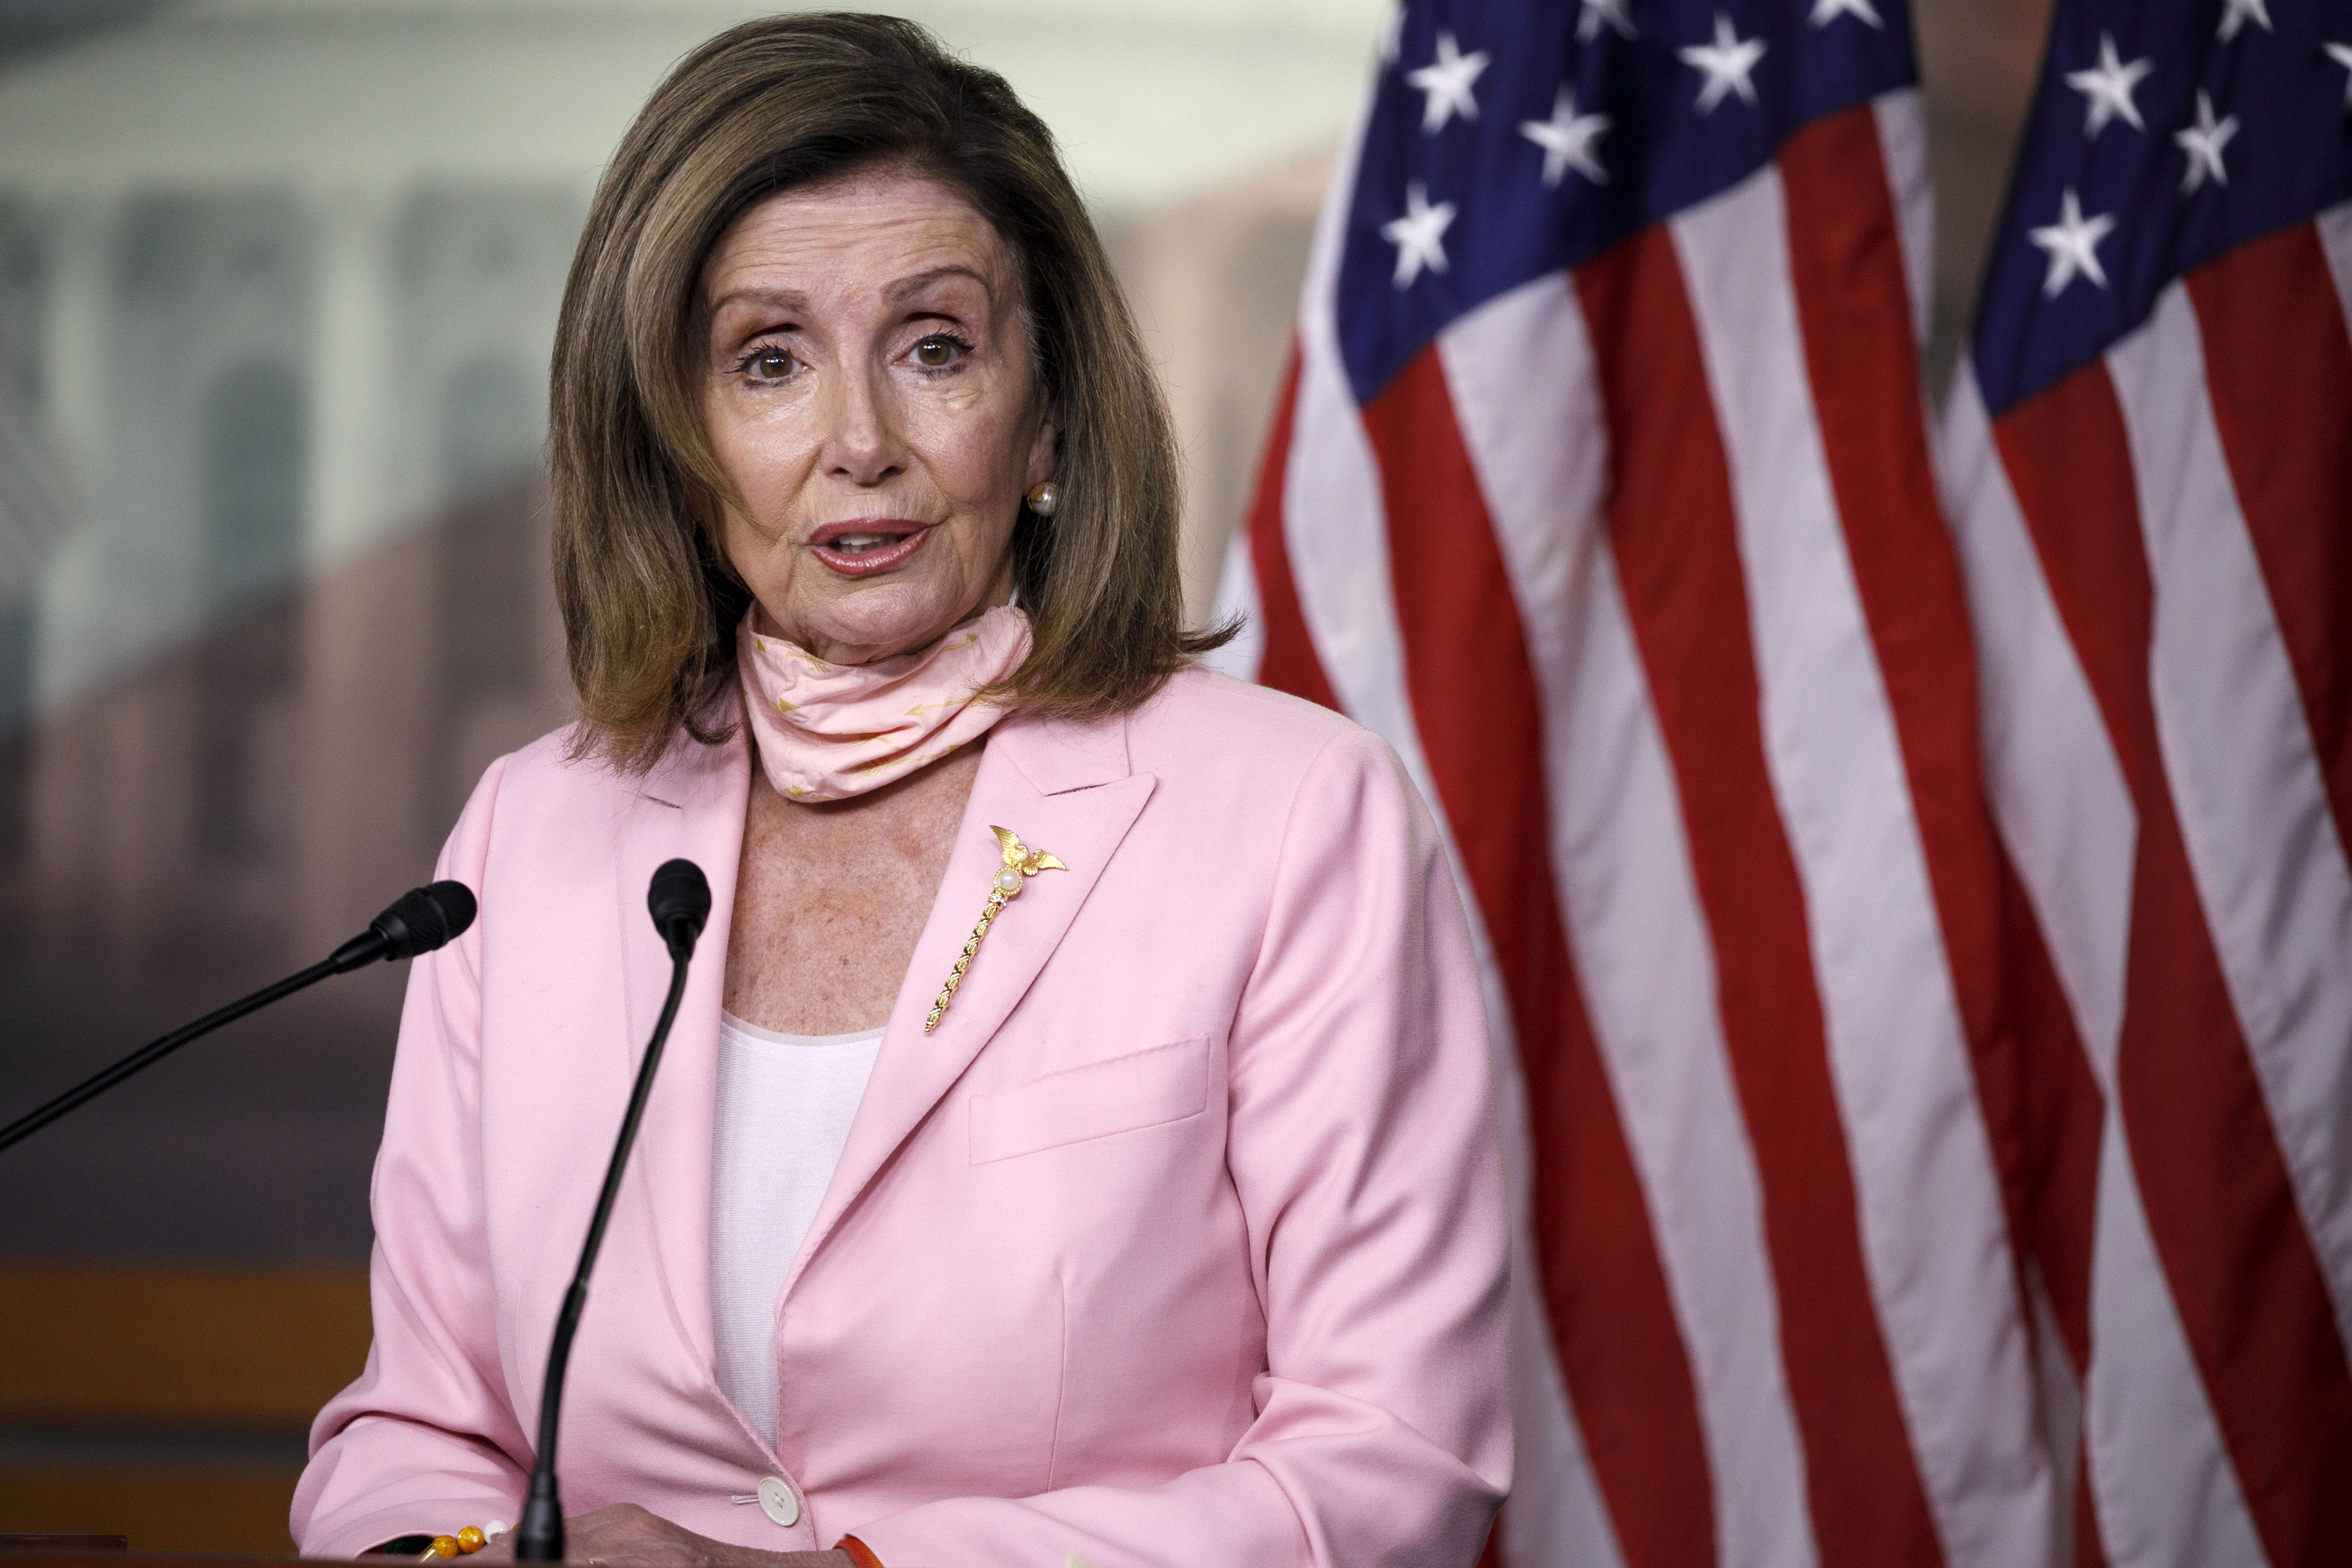 House Speaker Nancy Pelosi speaks during a news conference in Washington, DC, on July 9.